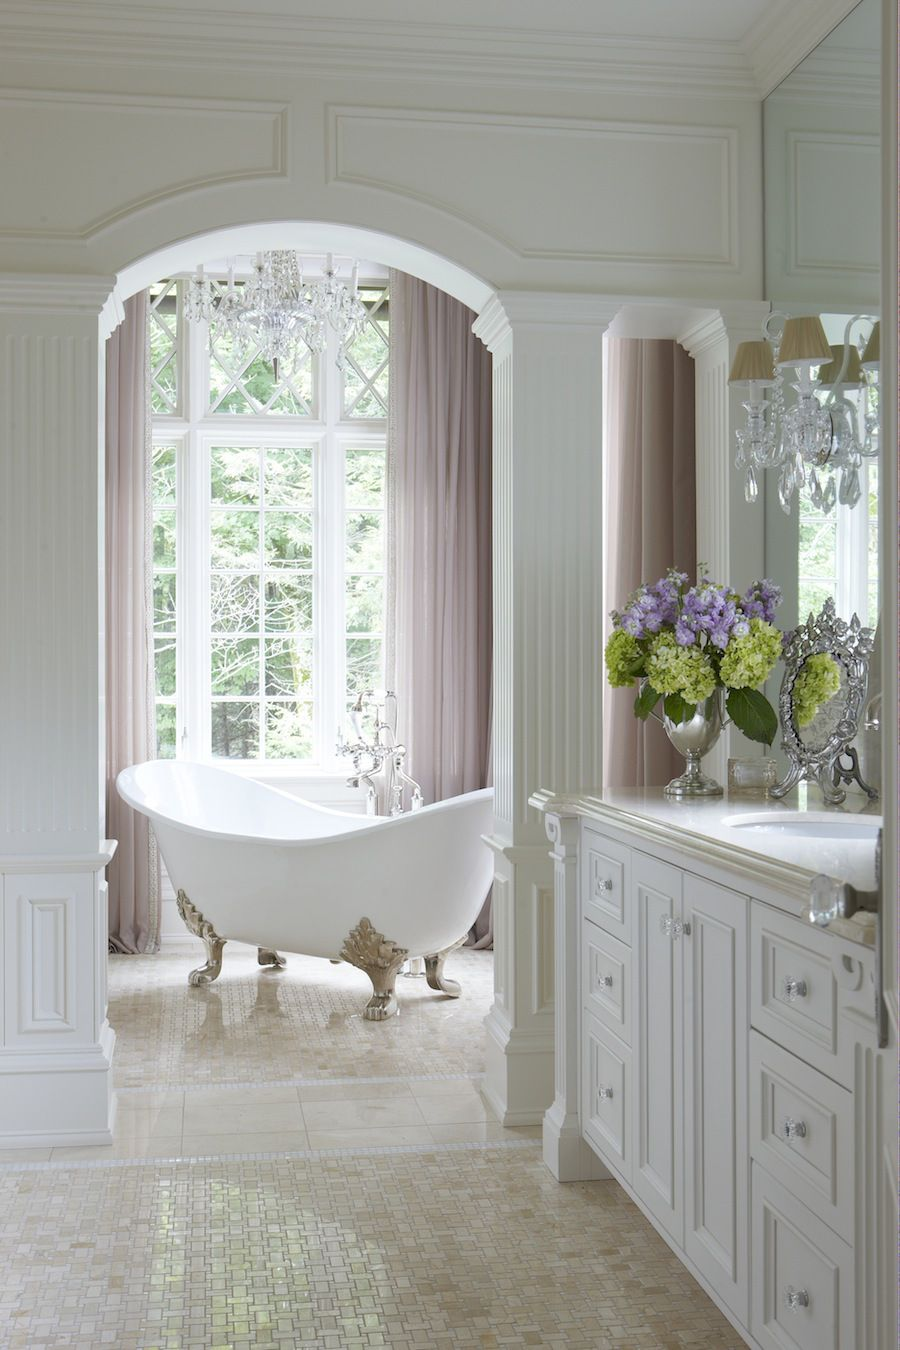 A Fairytale Bath #dreambathrooms